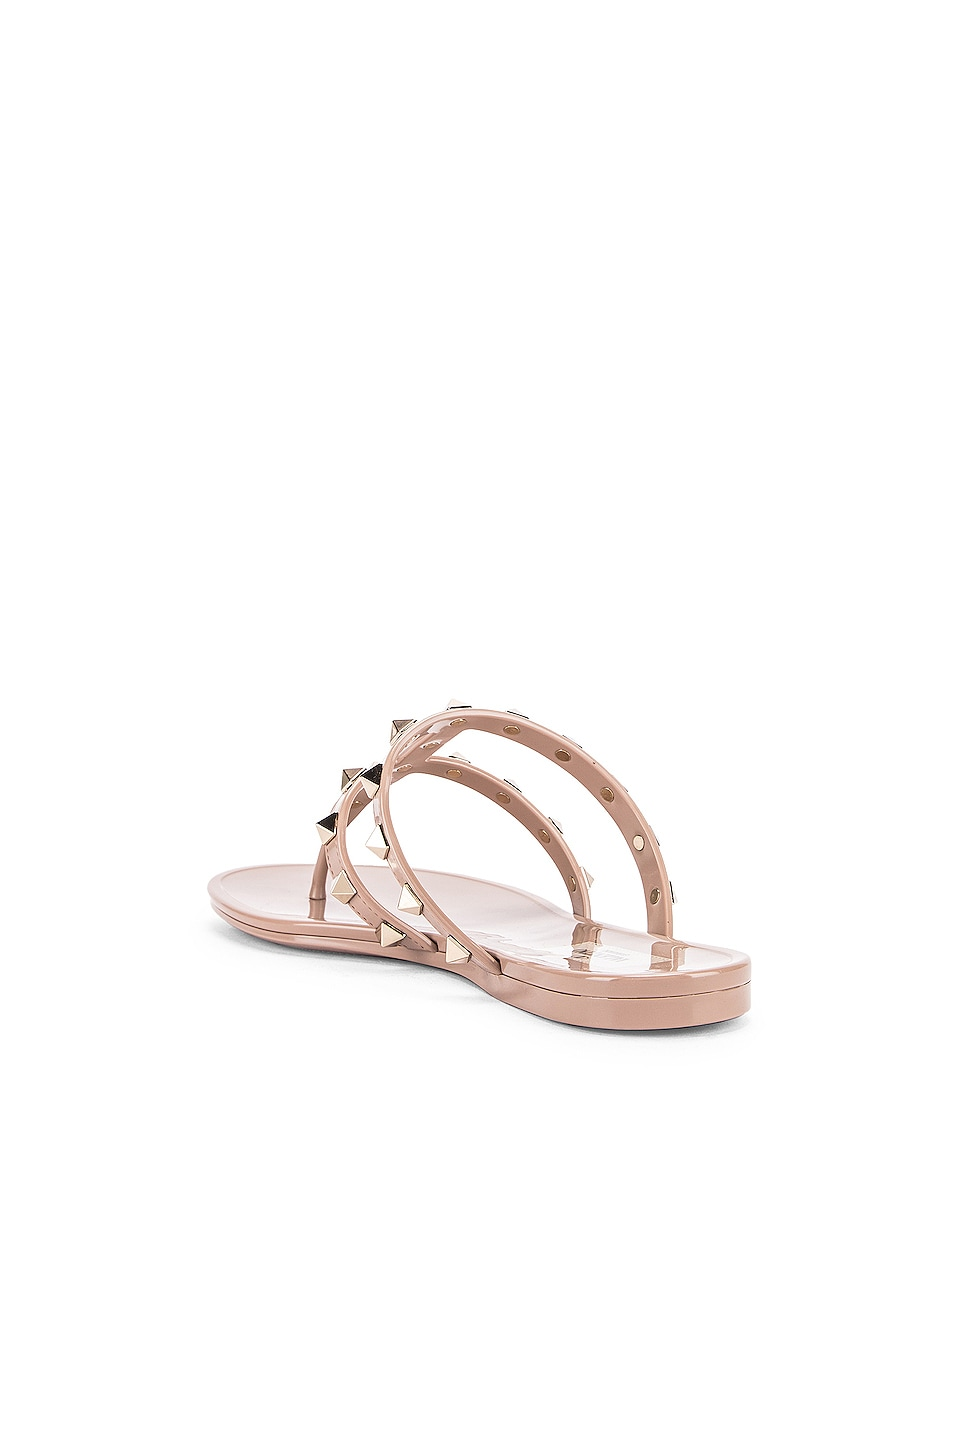 Image 3 of Valentino Rockstud Summer Thong Sandals in Poudre